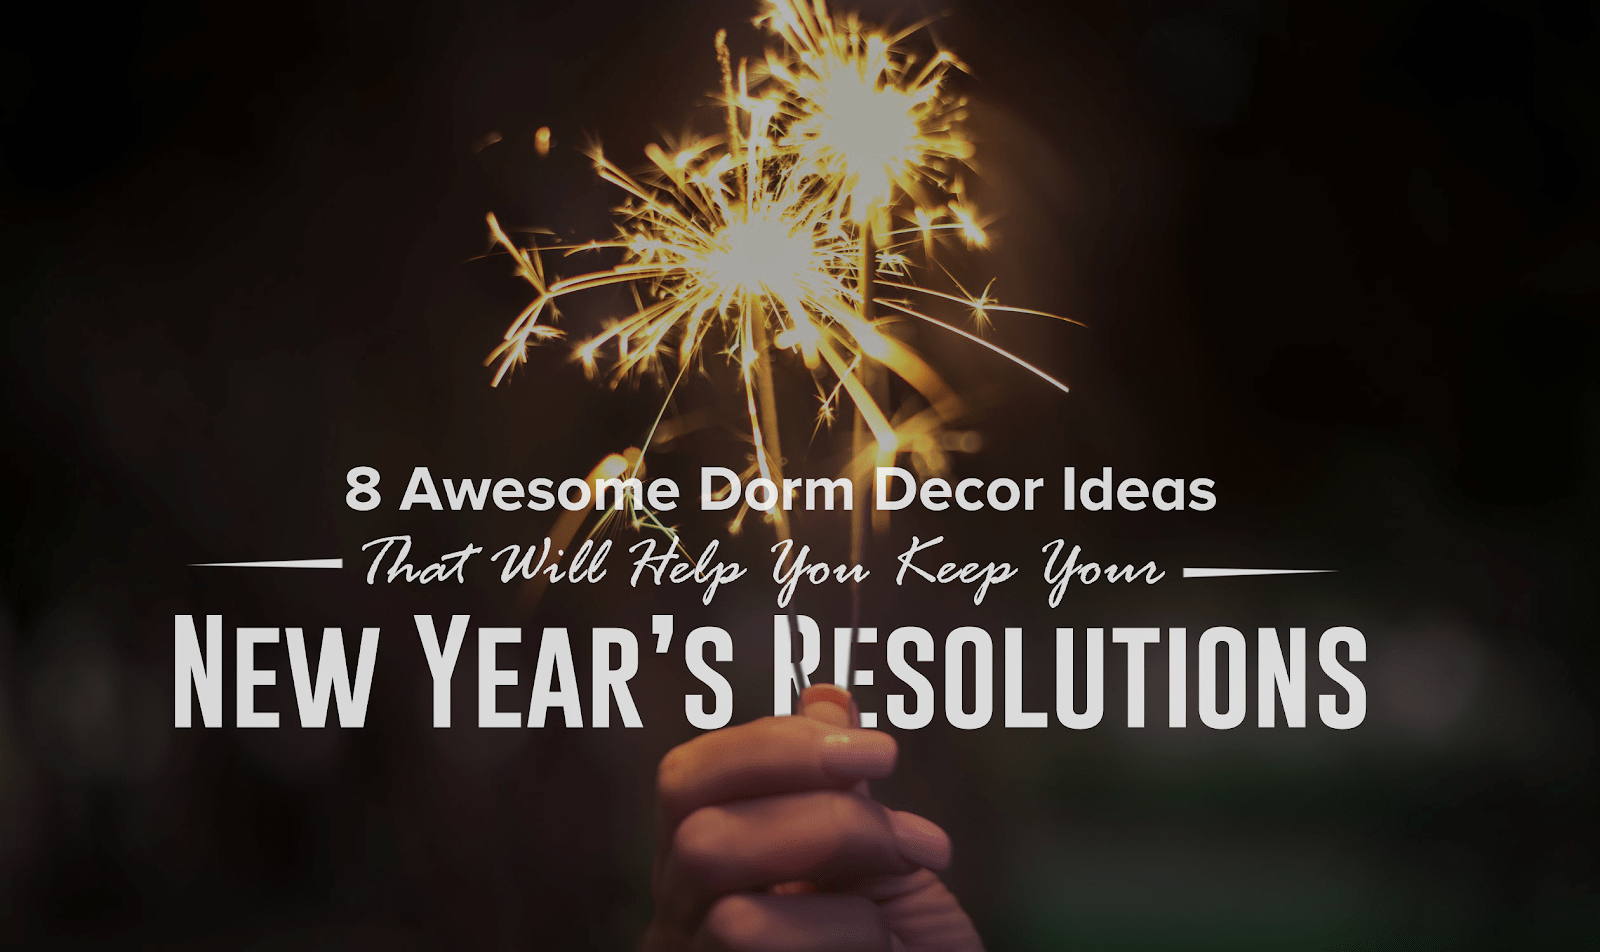 8 Awesome Dorm Decor Ideas That Will Help You Keep Your New Year's Resolutions